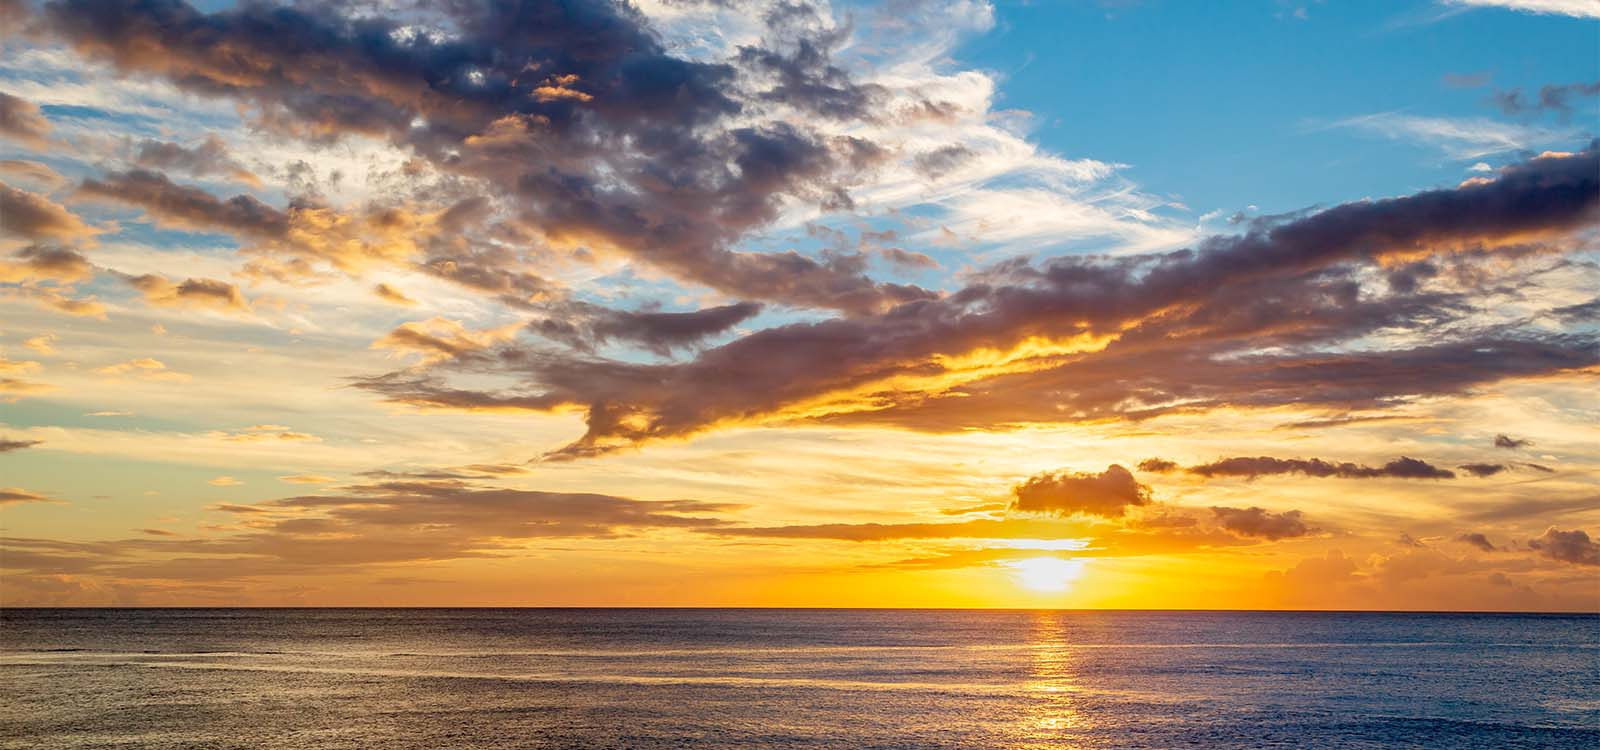 Sunset landscape in the Caribbean island of Dominica